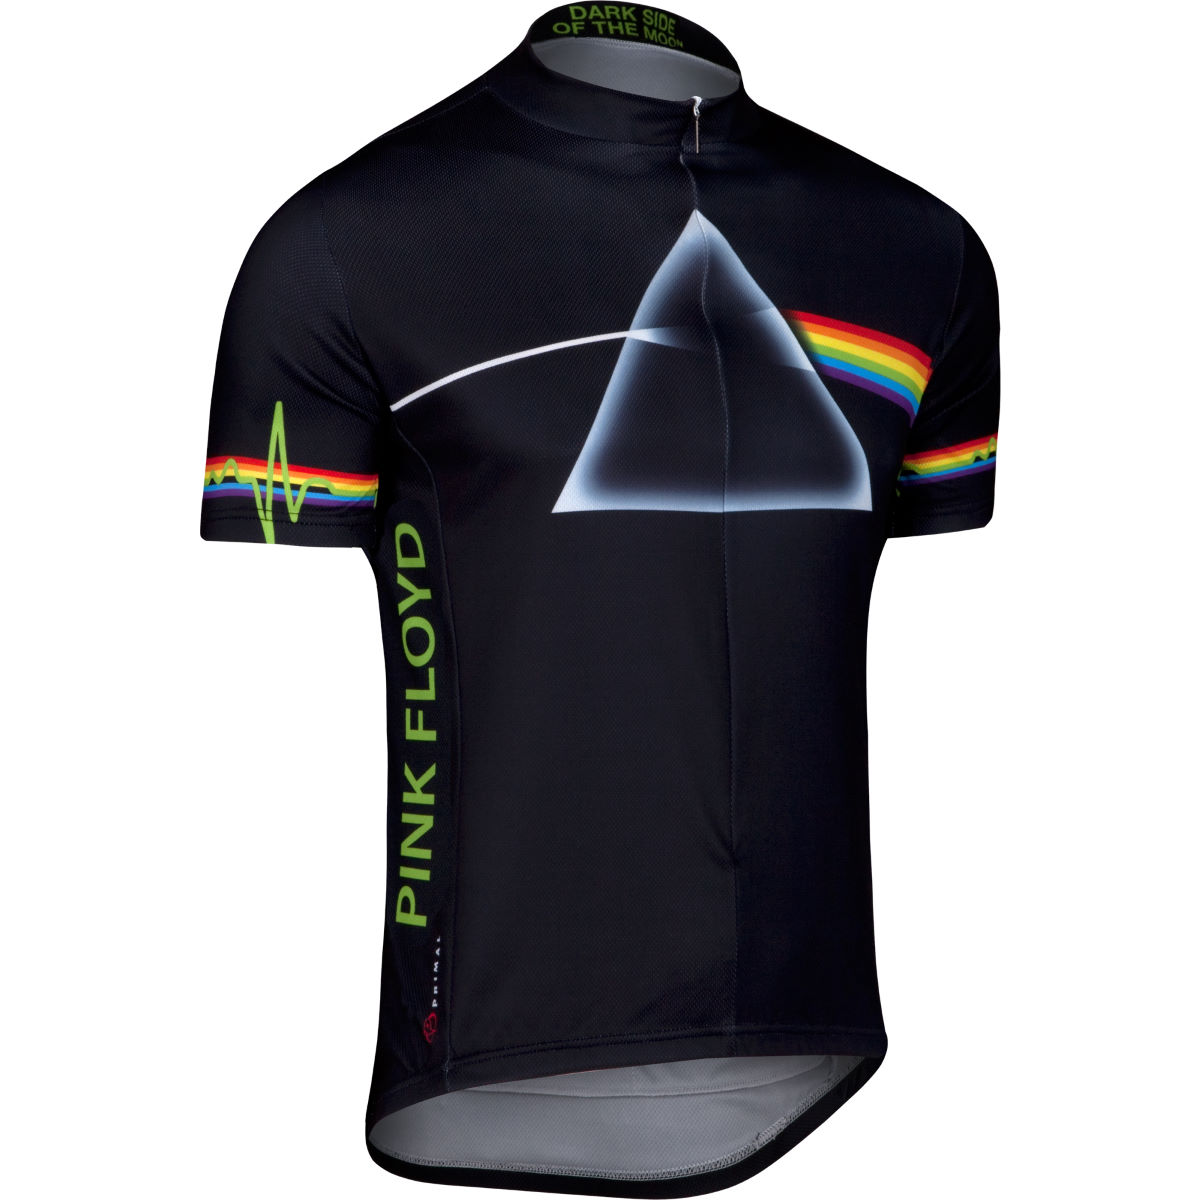 Maillot Primal Pink Floyd Dark Side - S Black/White/Rainbow Maillots vélo à manches courtes